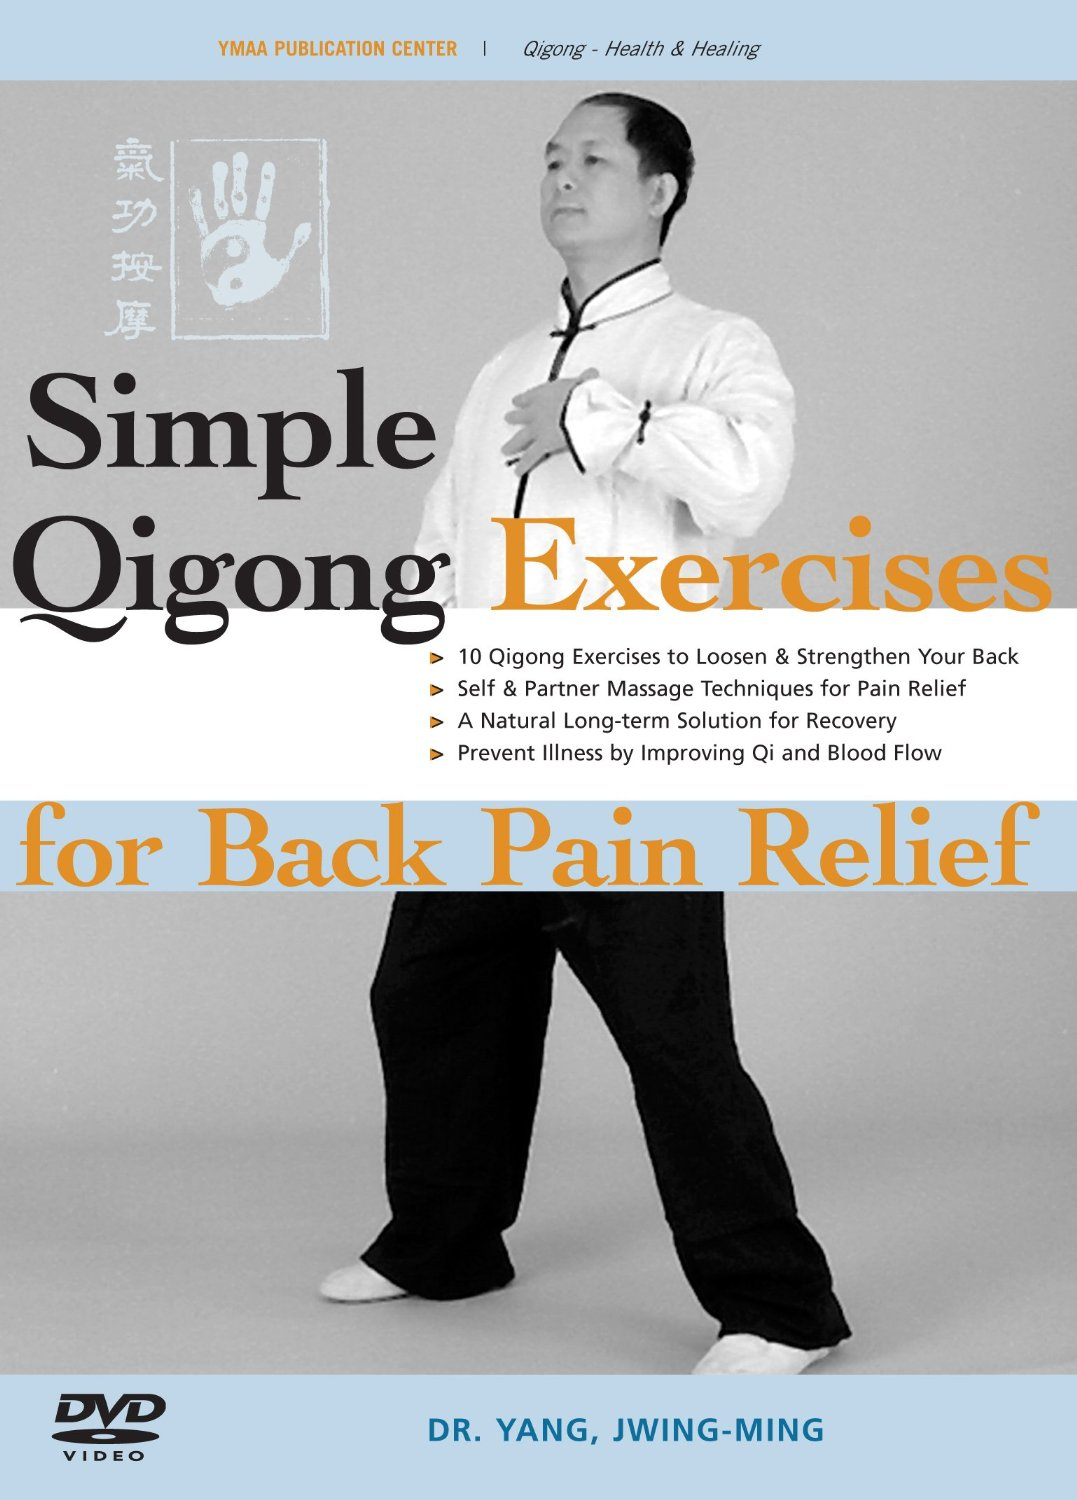 Back Pain Relief Simple Qigong Exercises for Healing